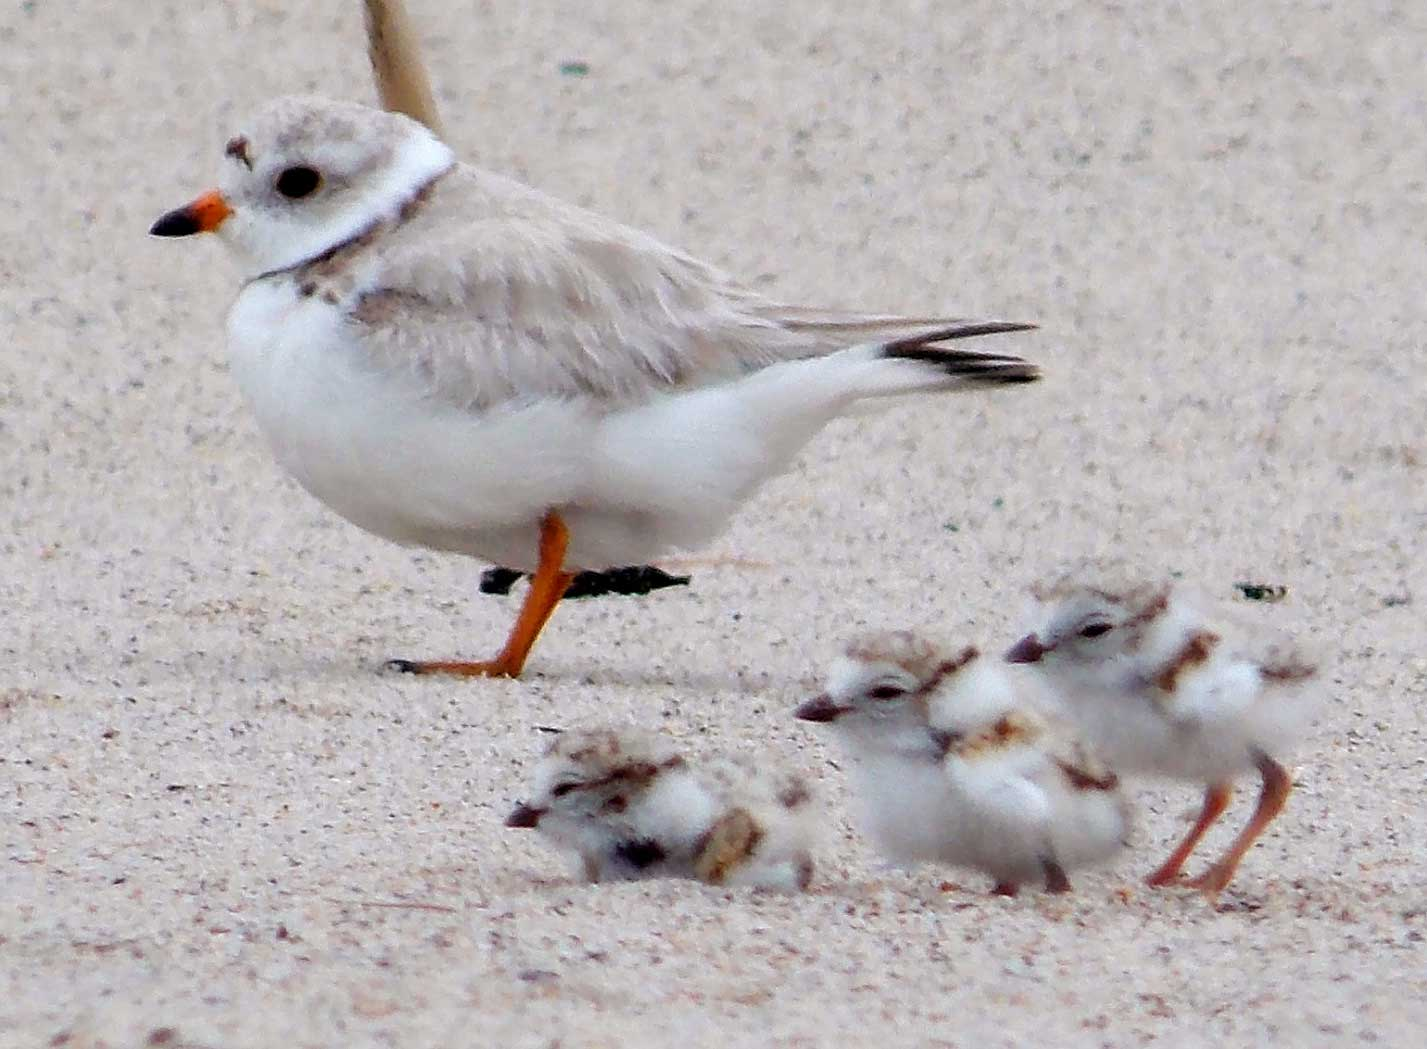 Piping plover and chicks (Credit: Kaiti Titherington/USFWS)